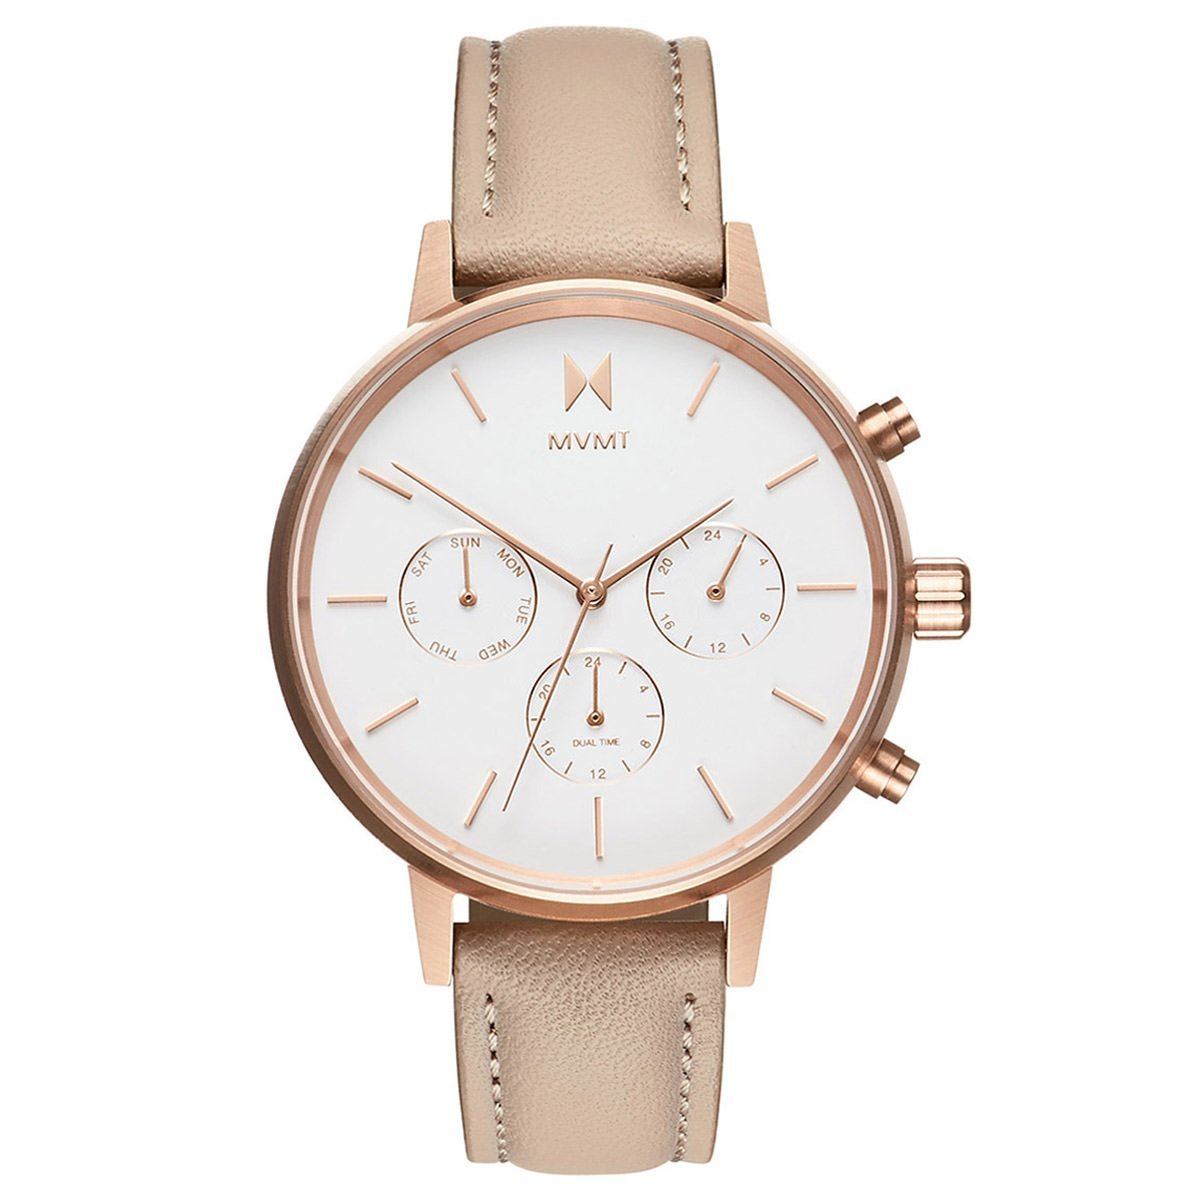 MVMT Women's Watch MVD-FC01-RGNU